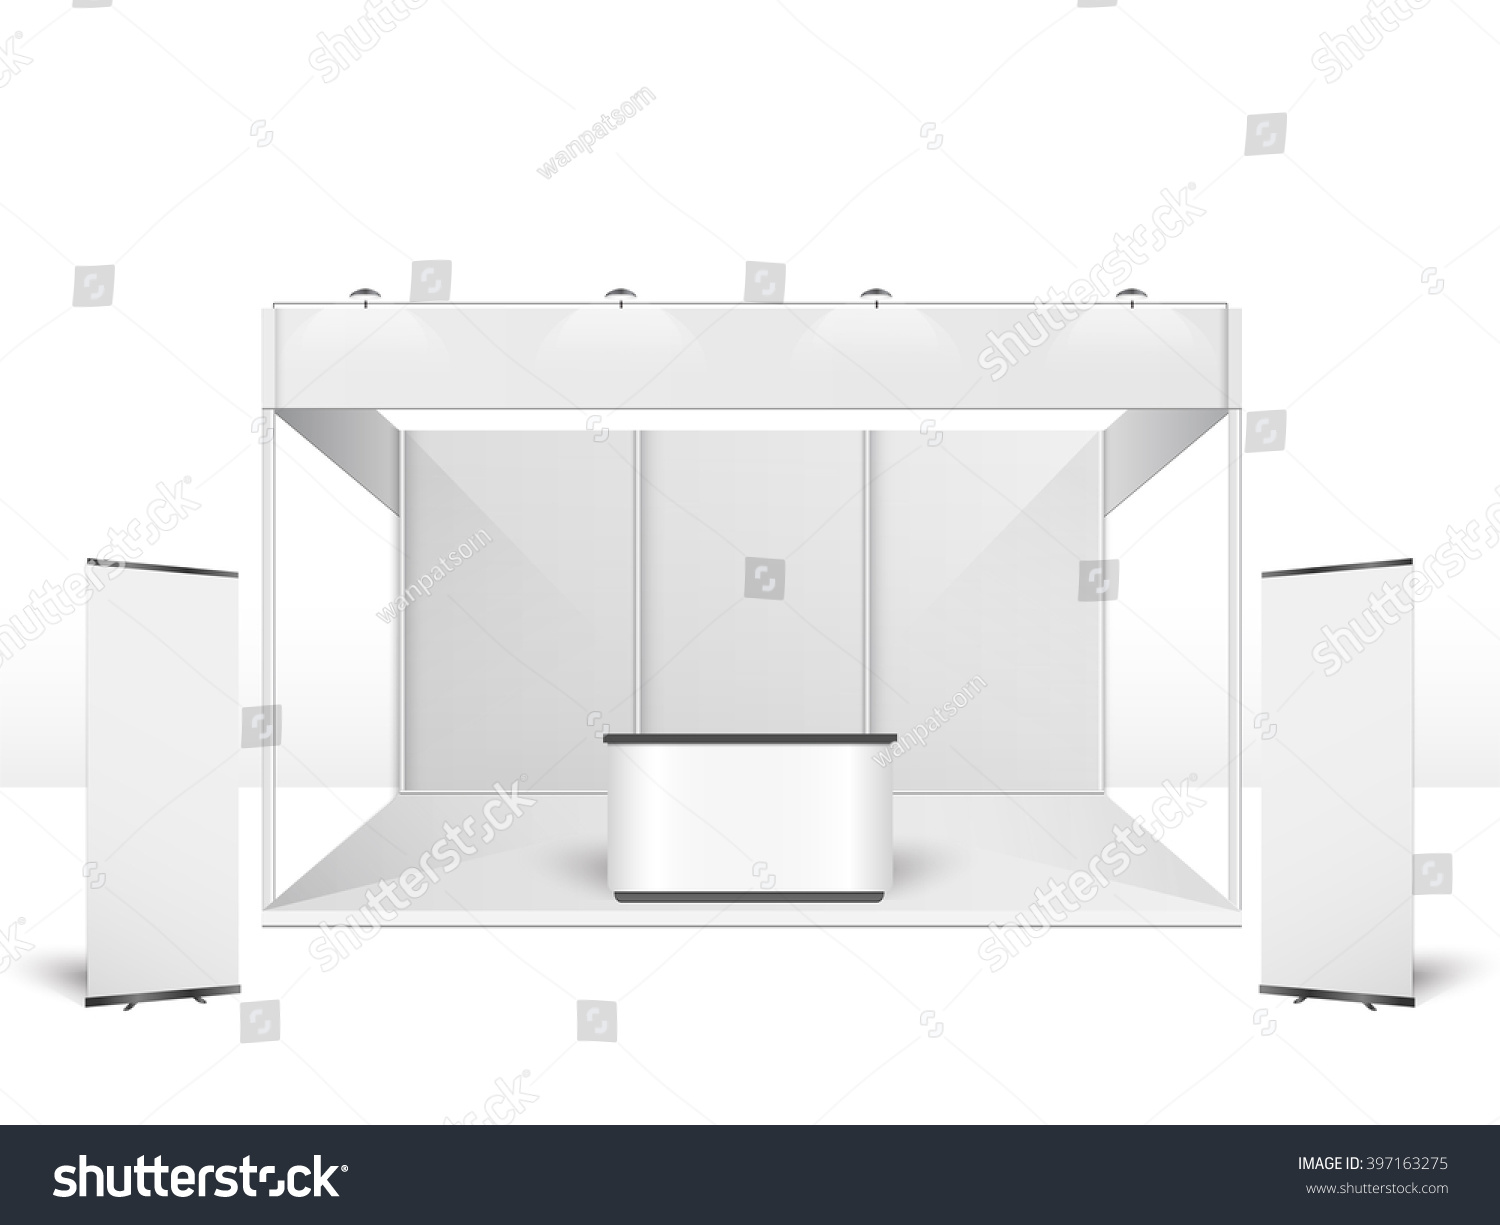 Exhibition Stand Design Template : White creative exhibition stand design booth stock vector